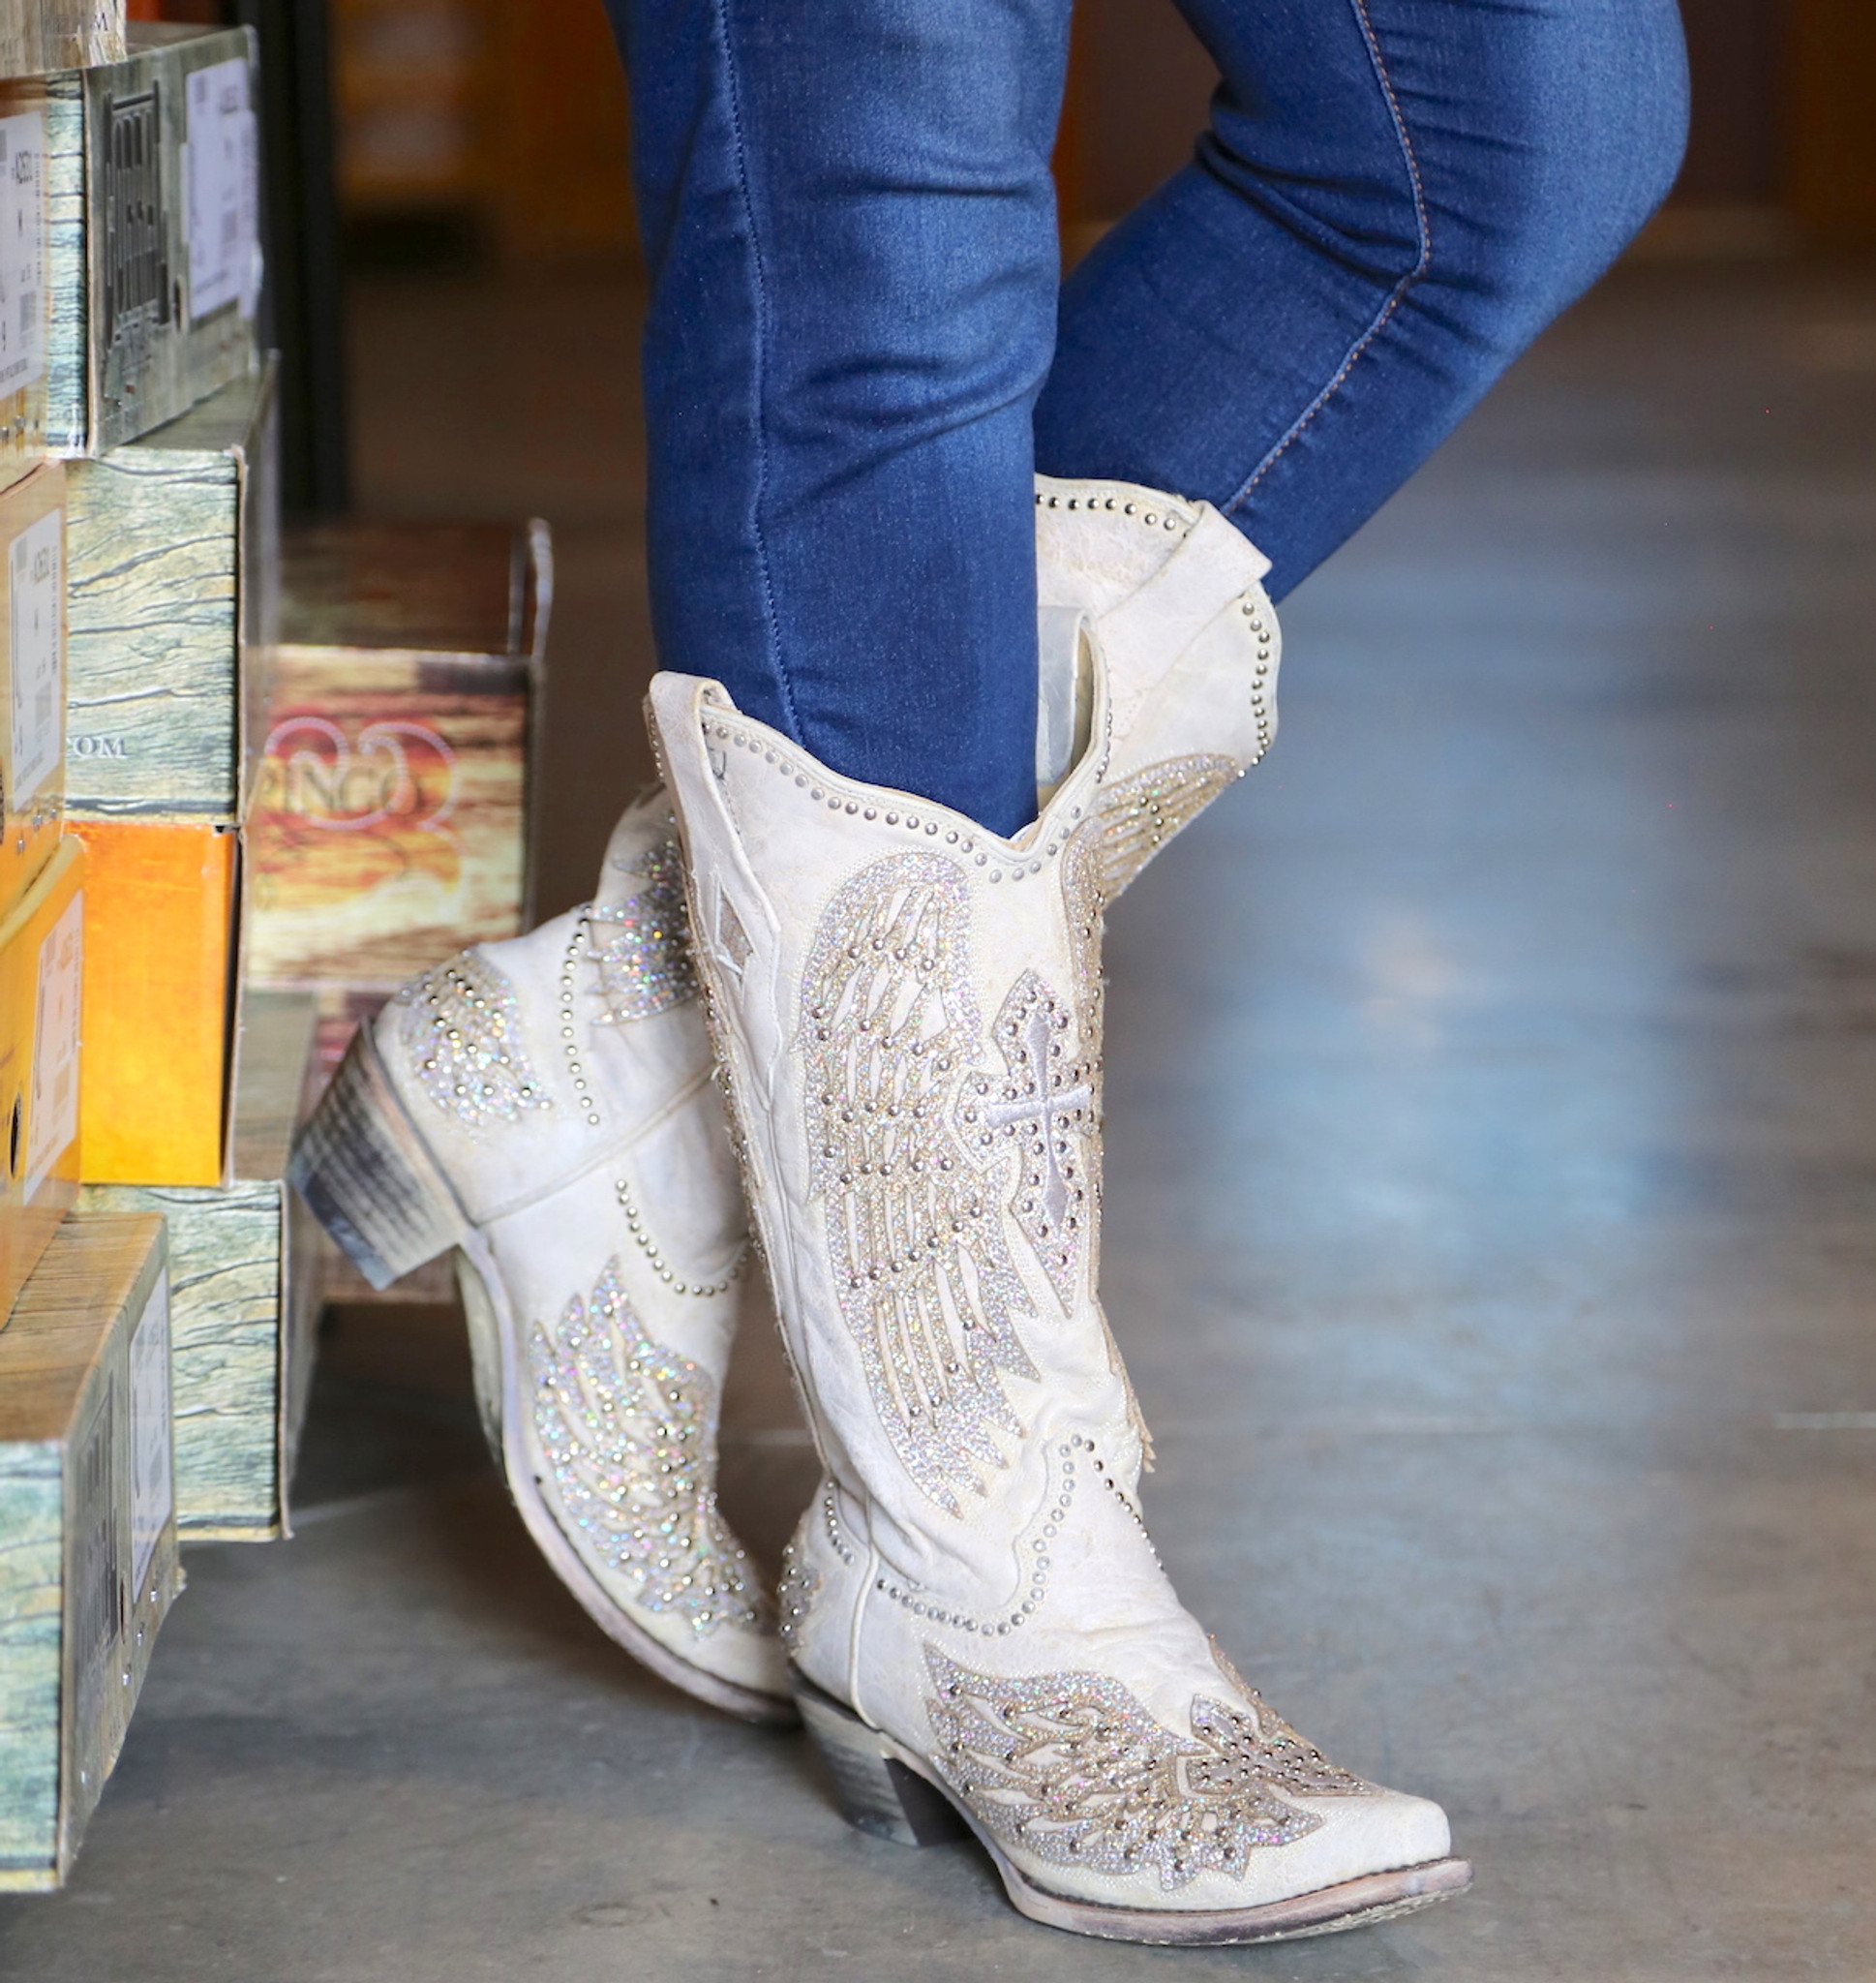 5189518aaa0 Corral Glitter Cross and Wings White Boots A3571 Picture